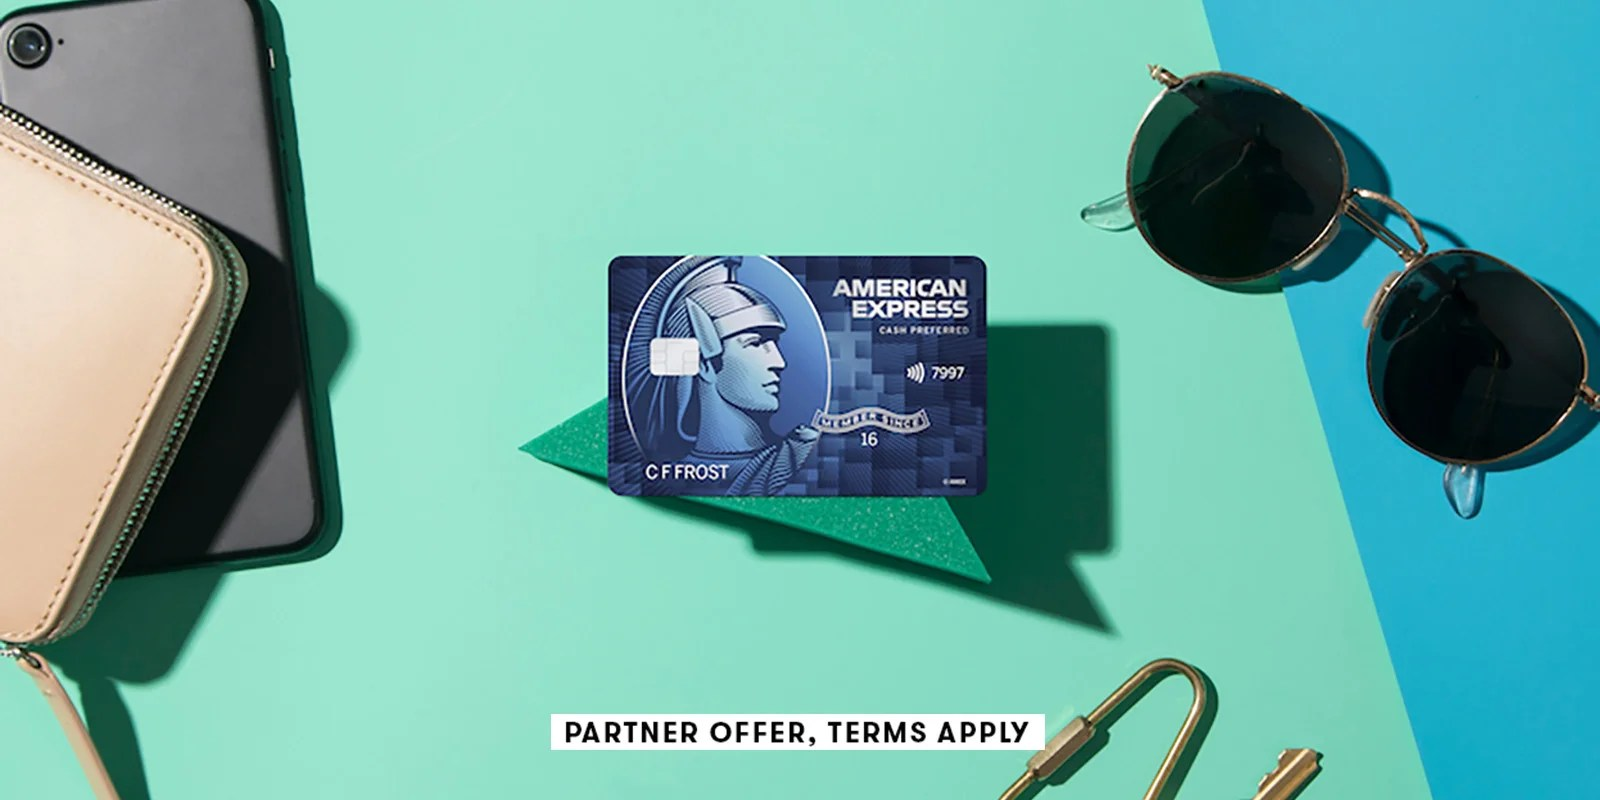 9 lesser-known benefits of the Amex Blue Cash Preferred Card